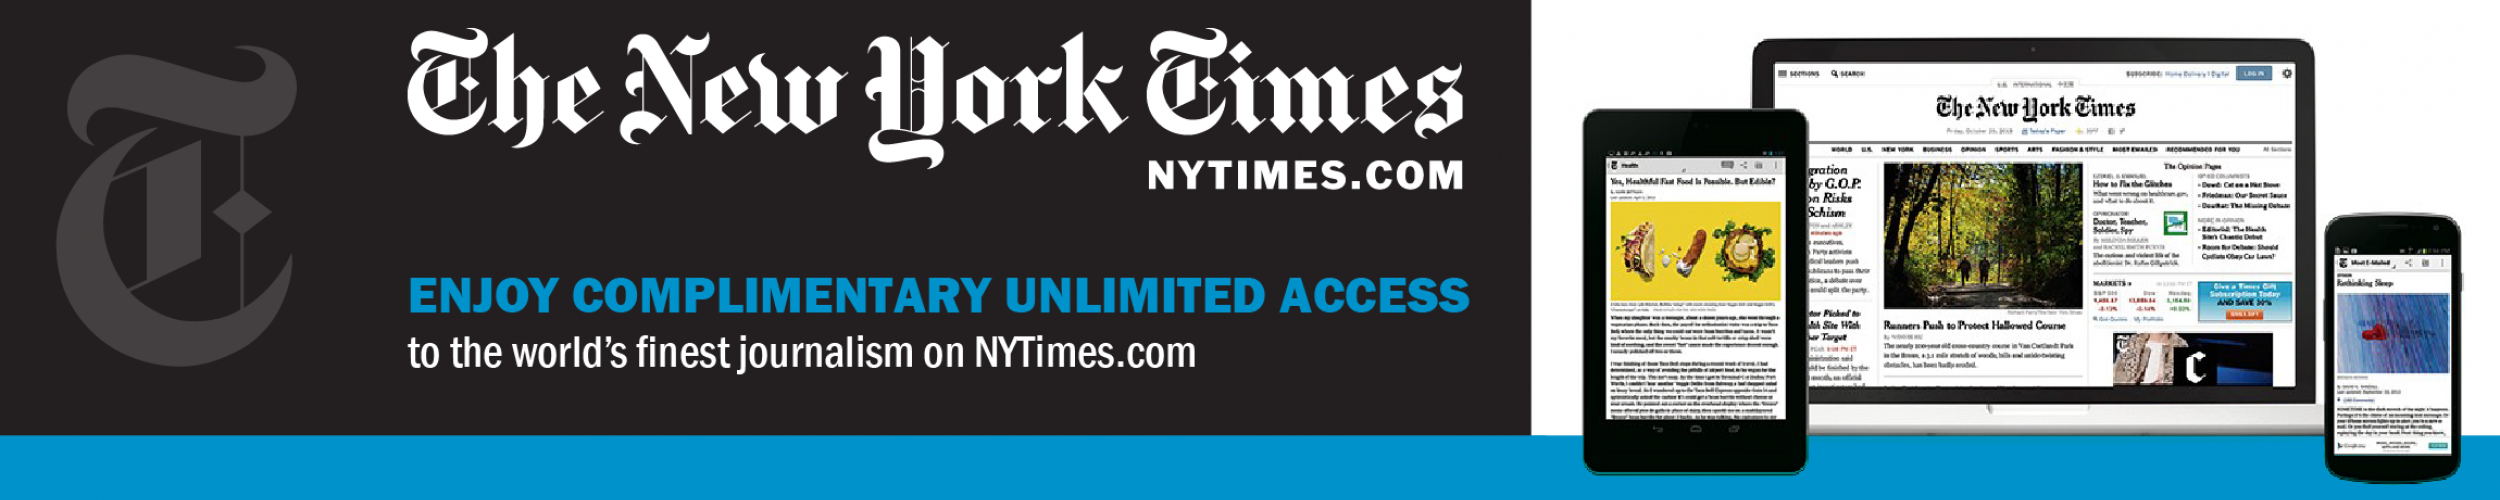 The New York Times (NYTimes.com): Enjoy complimentary unlimited access to the world's finest journalism on NYTimes.com the world's